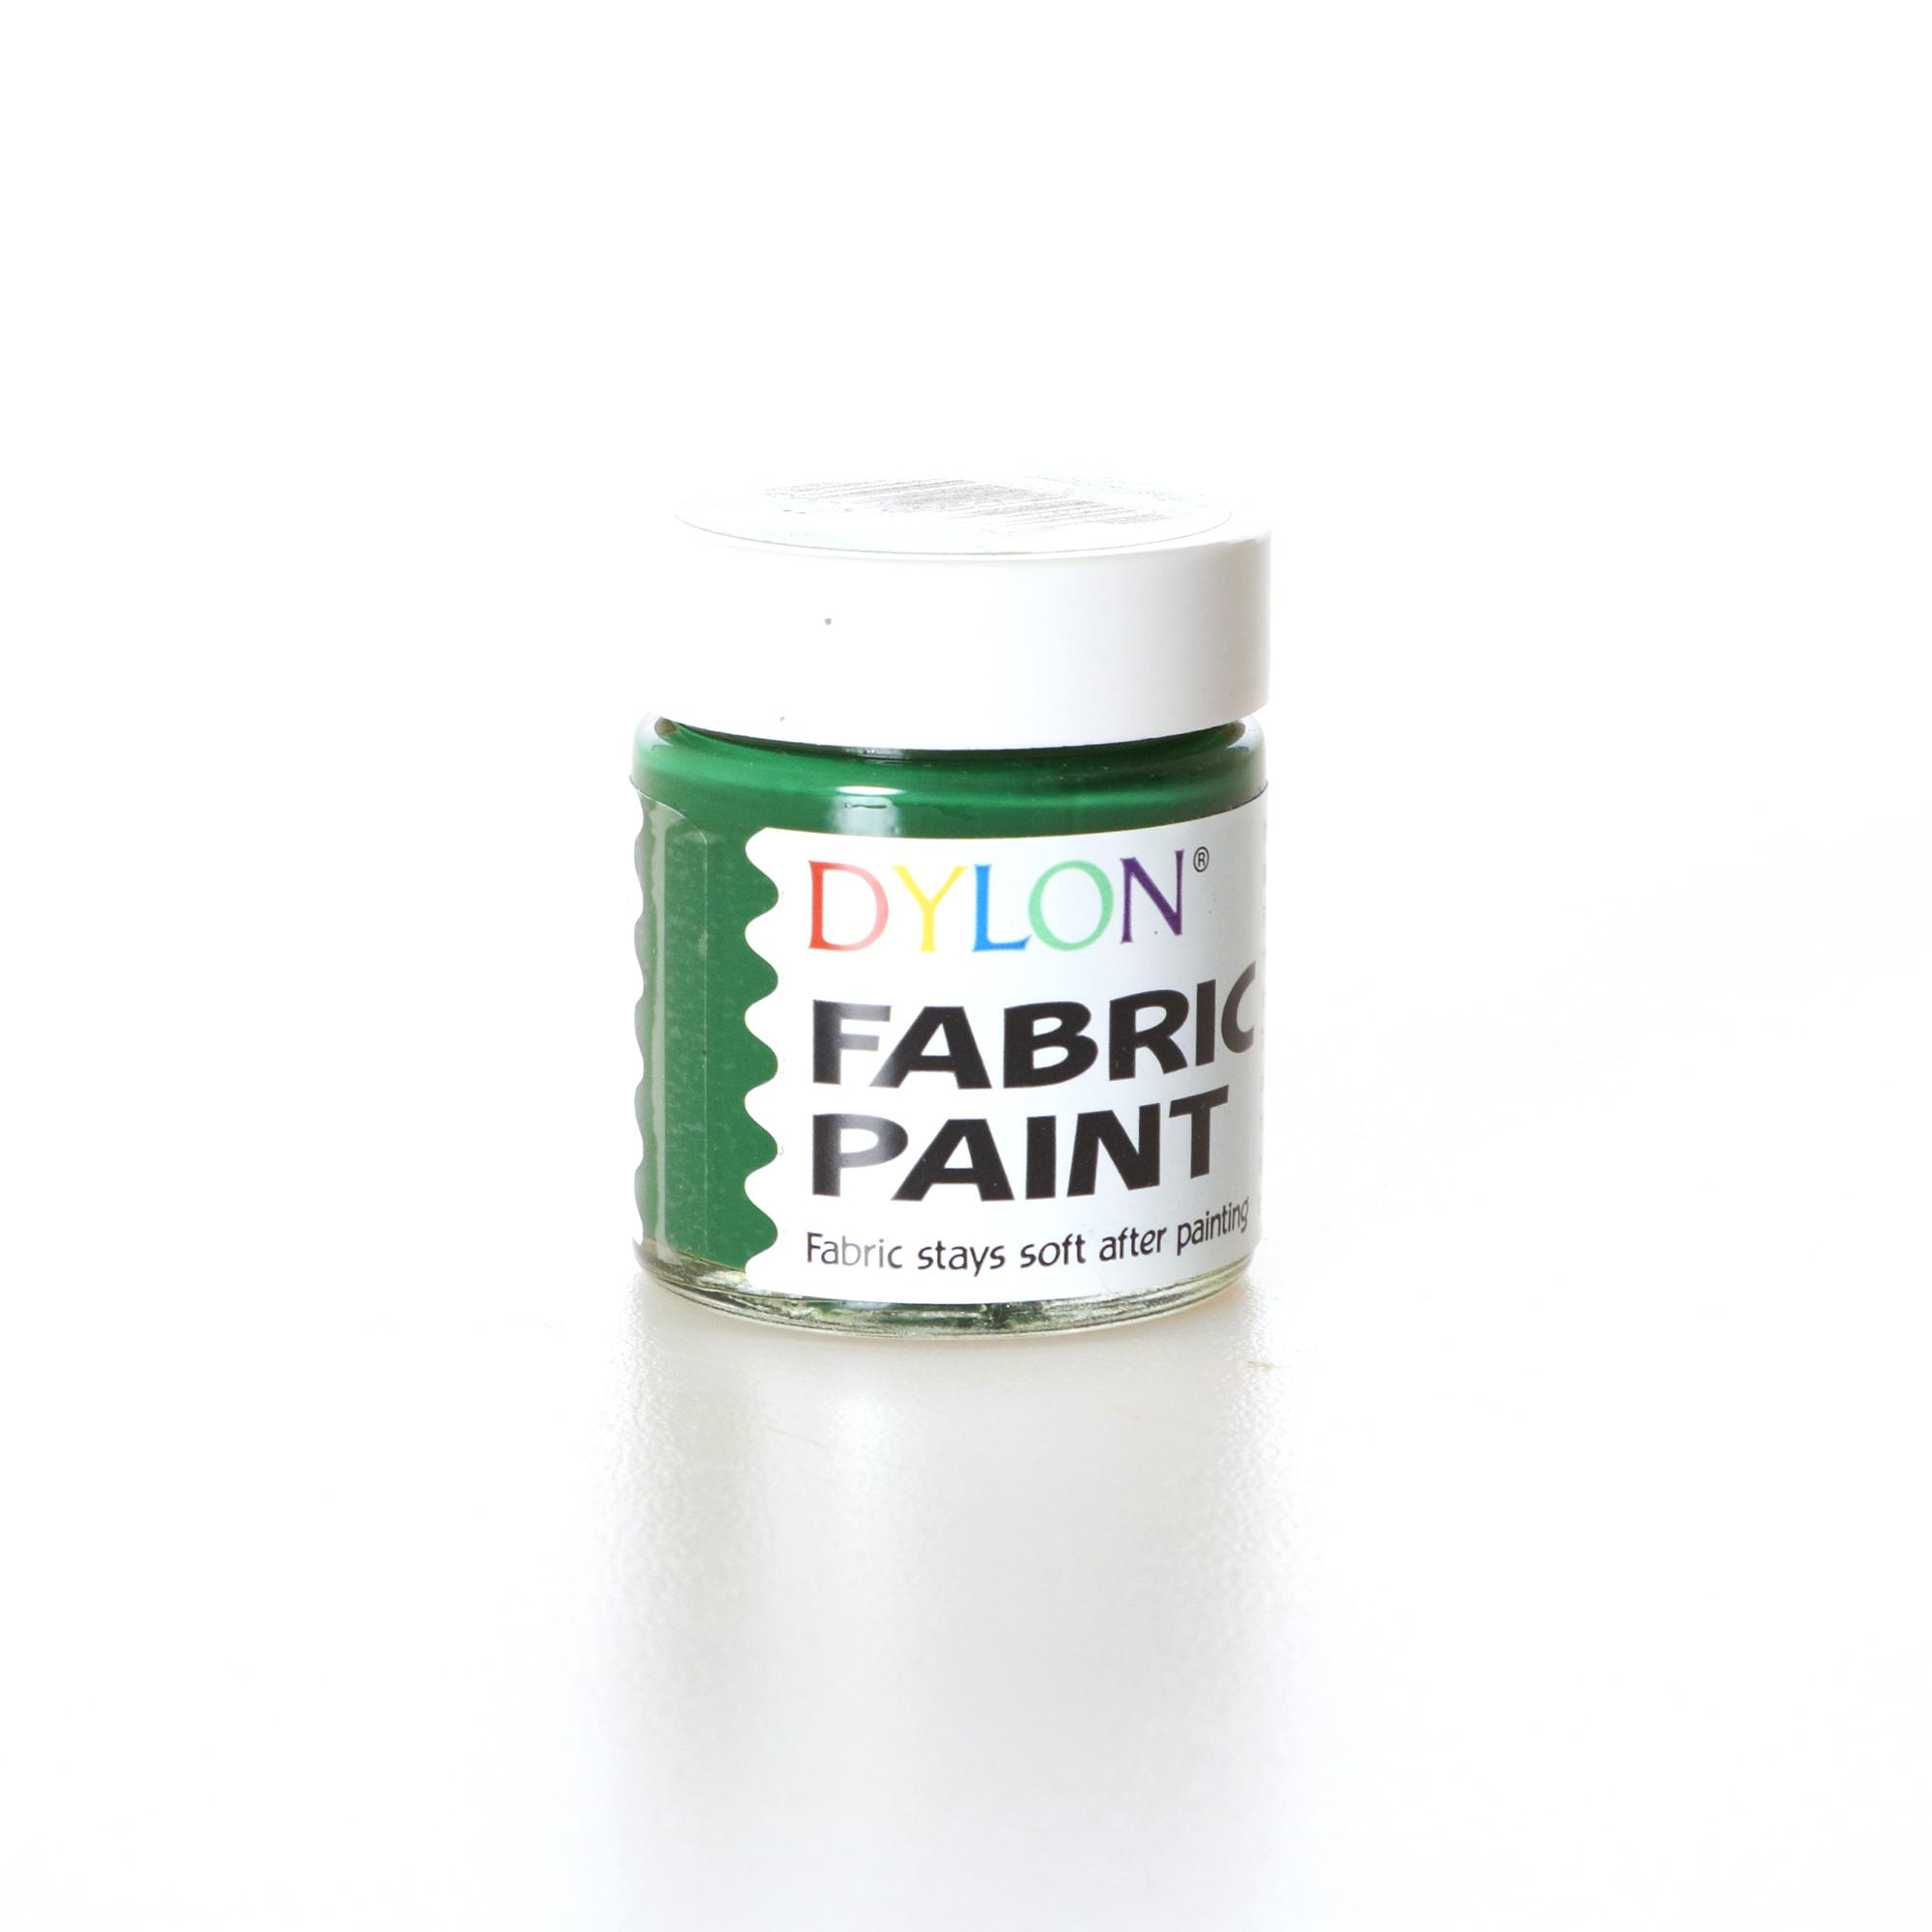 Dylon Fabric Paint